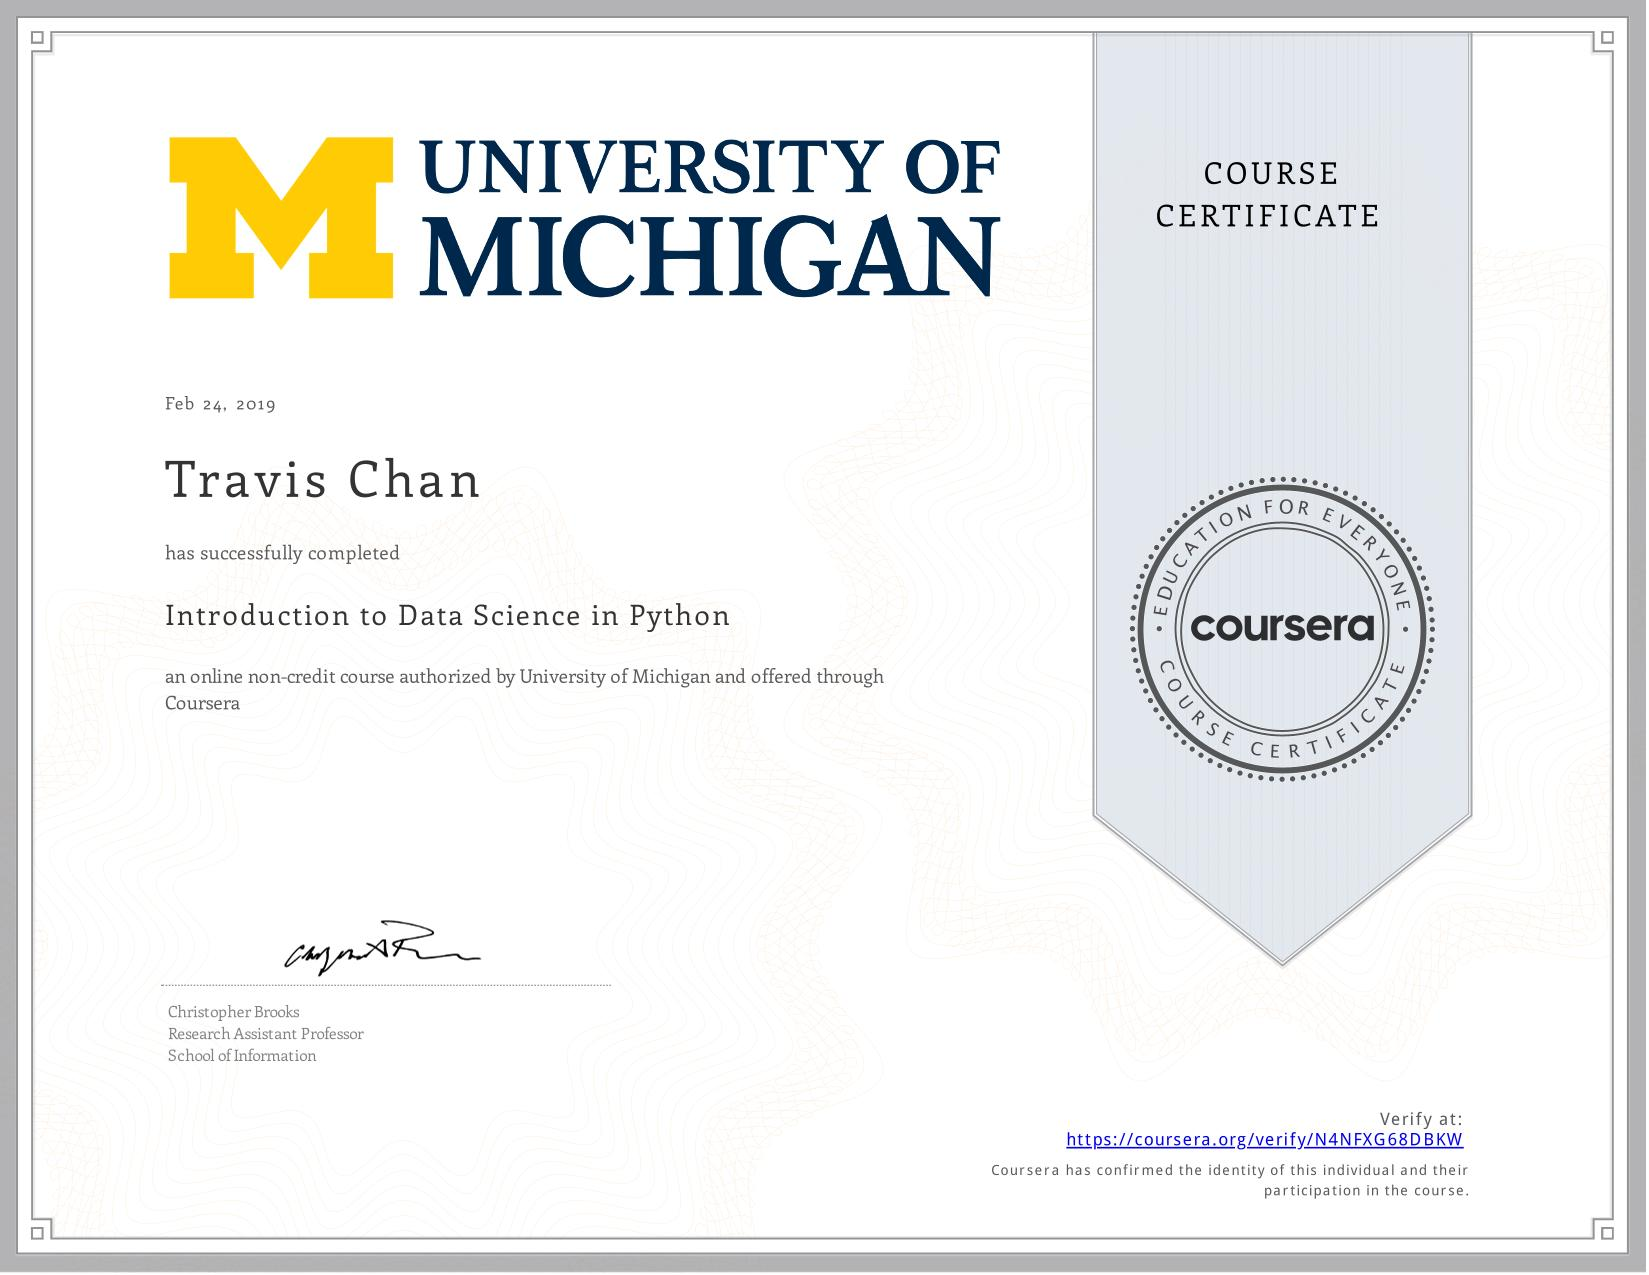 View certificate for Travis Chan, Introduction to Data Science in Python, an online non-credit course authorized by University of Michigan and offered through Coursera